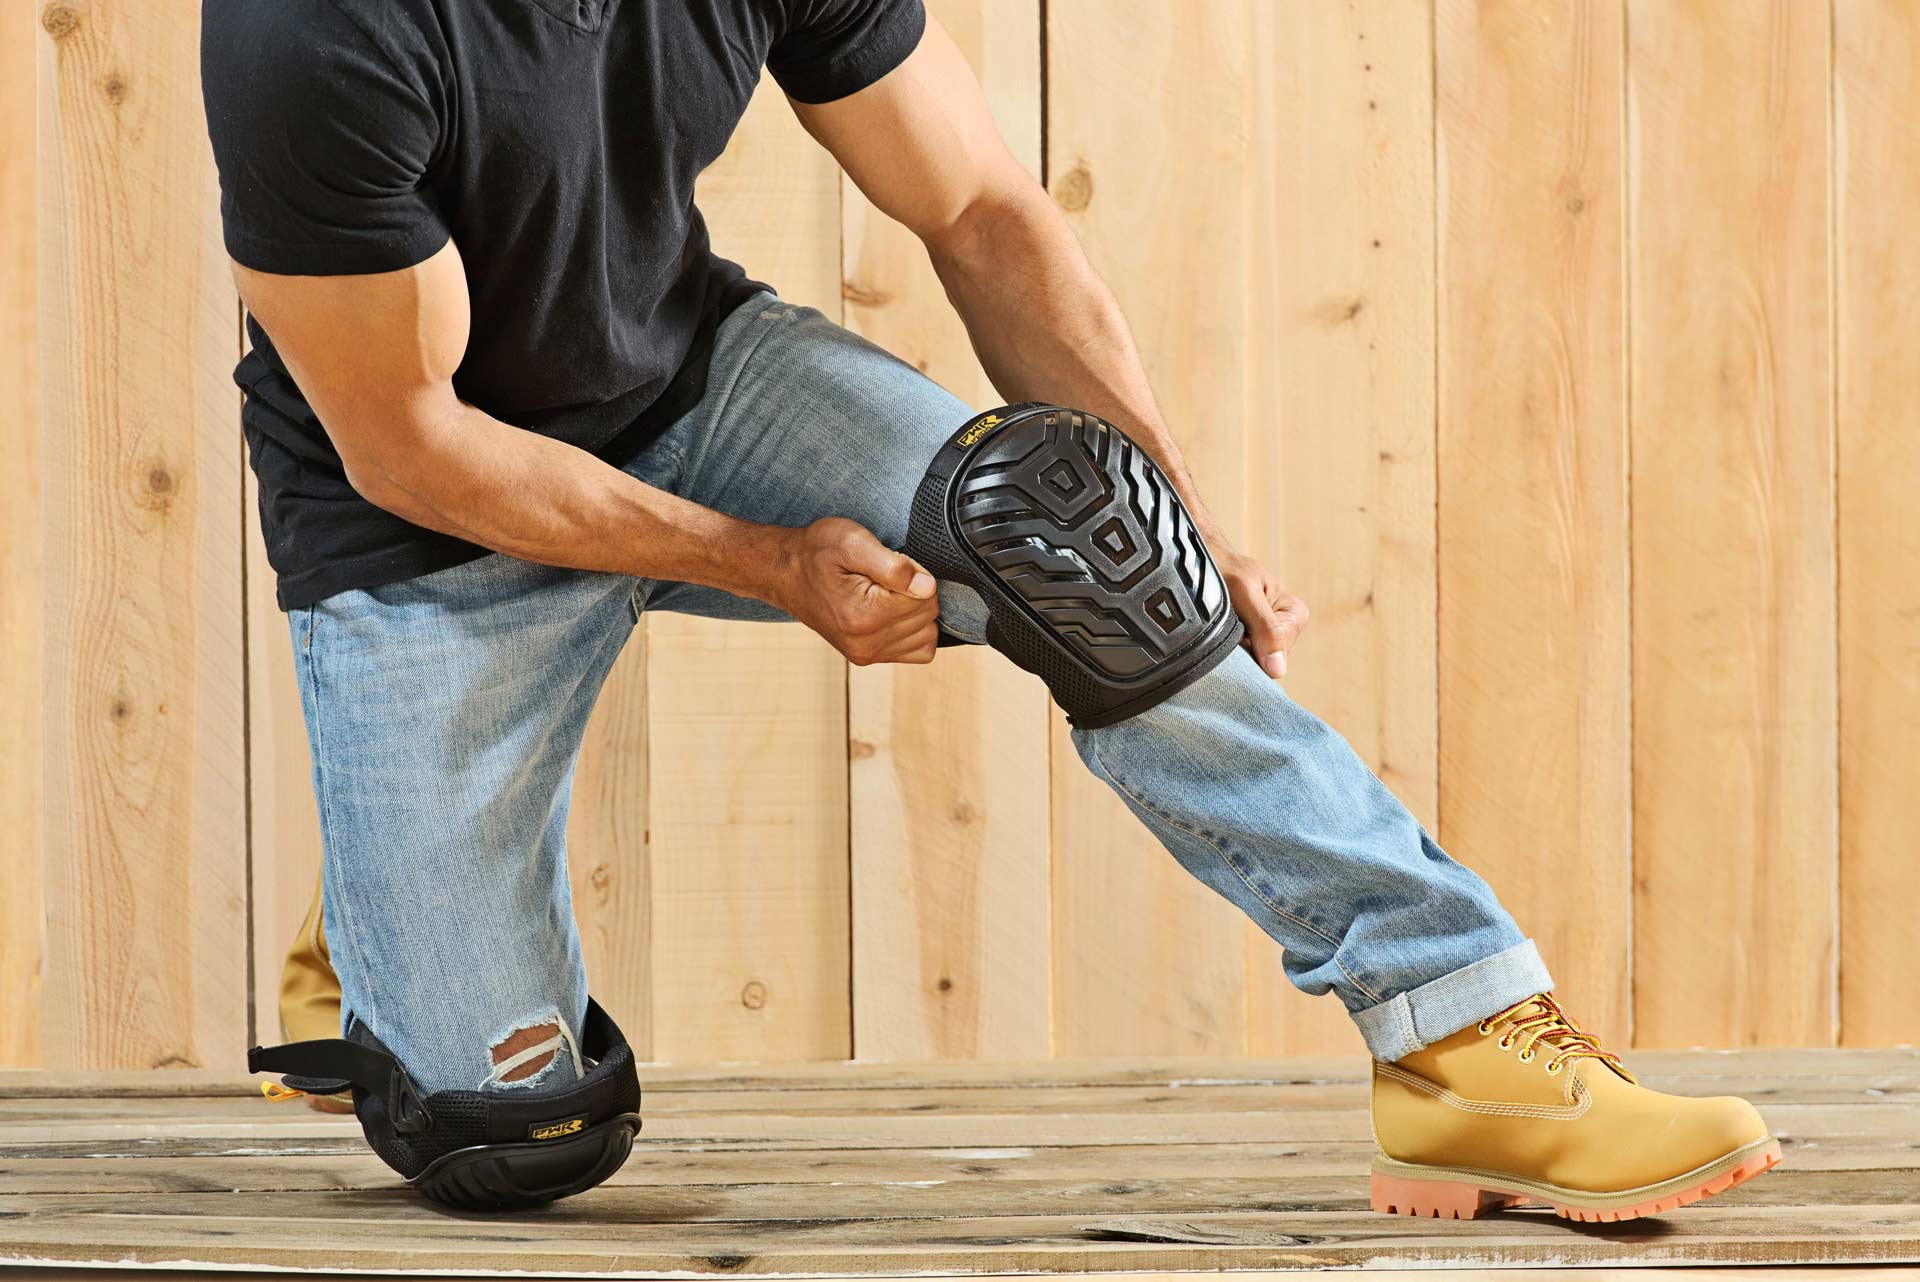 Top 10 Best Knee Pads for Work in 2020 Buyers Guide & Reviews